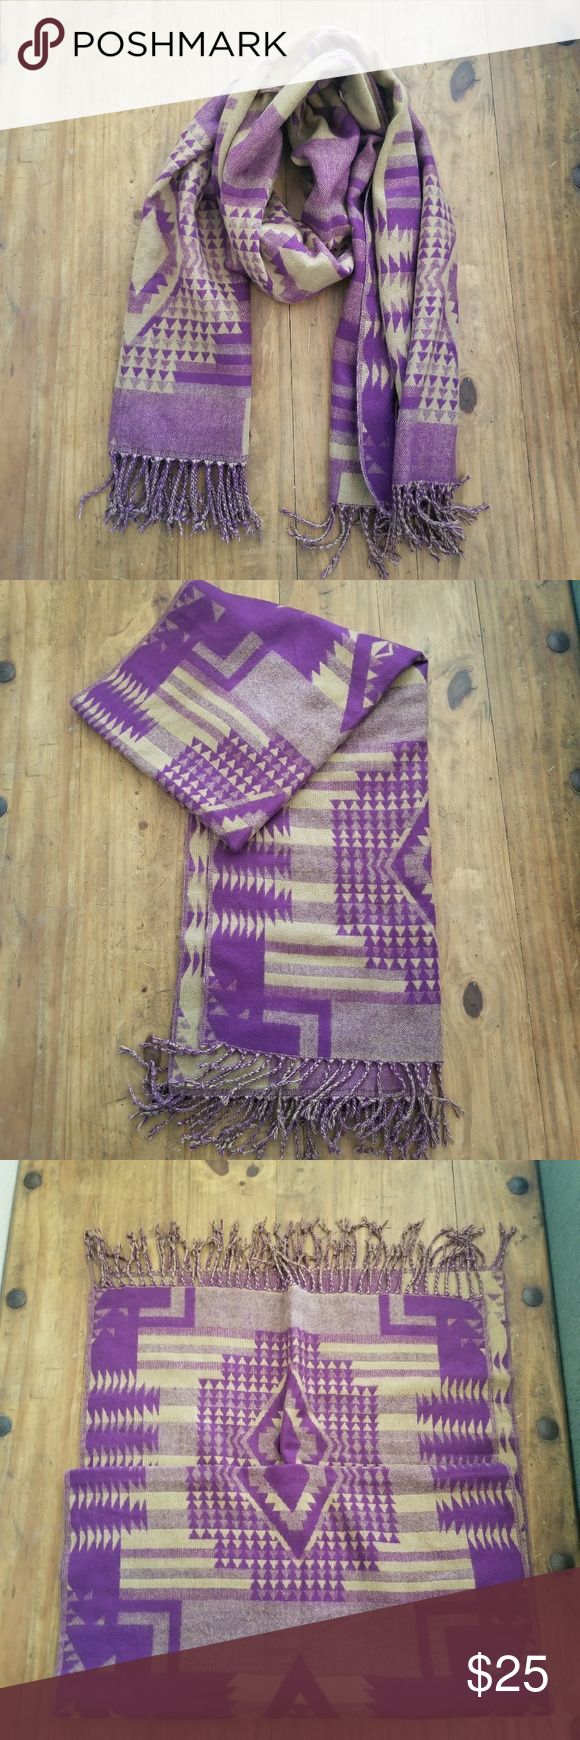 NWOT❕ Purple & Camel Scarf Never Been Worn Cute Print Very Soft 100% Acrylic  BUNDLE & SAVE Accessories Scarves & Wraps